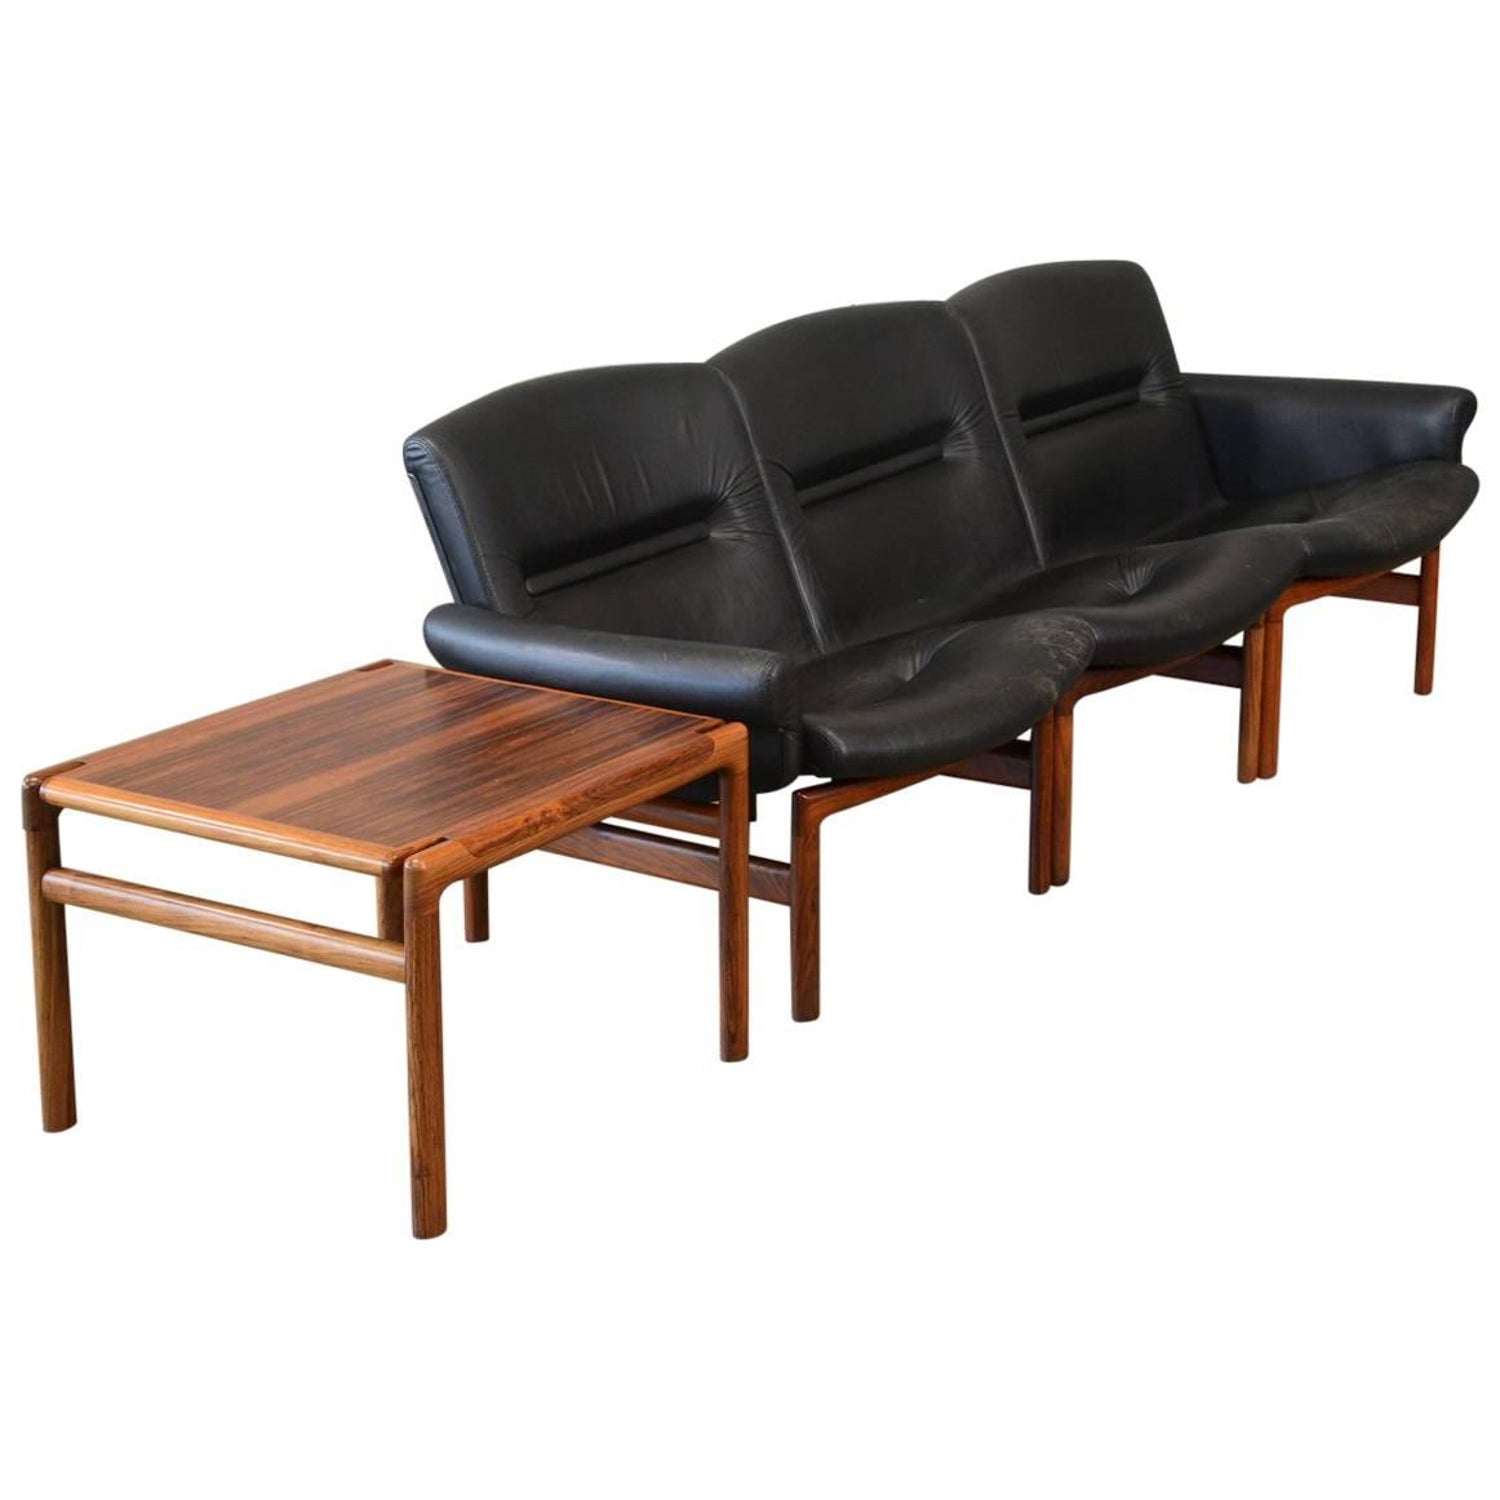 Modular Rosewood and Black Leather Sofa Set For Sale at 1stdibs